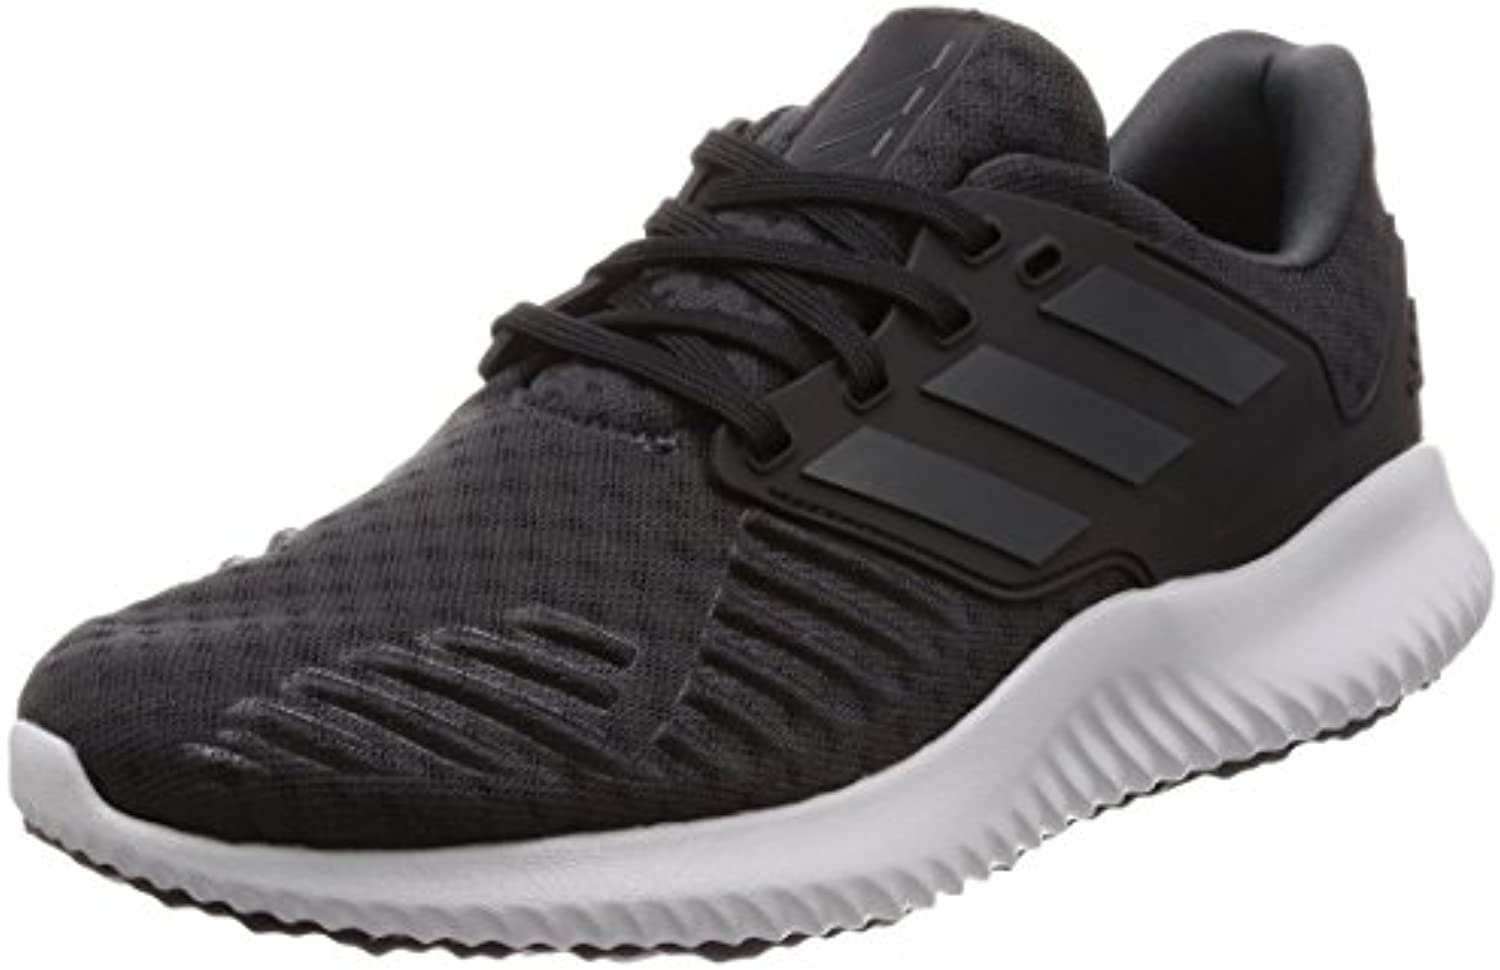 online store 0a82b c9e7f Adidas Alphabounce Alphabounce Alphabounce Rc.2 M, Scarpe da Fitness Uomo    Uscita 393401